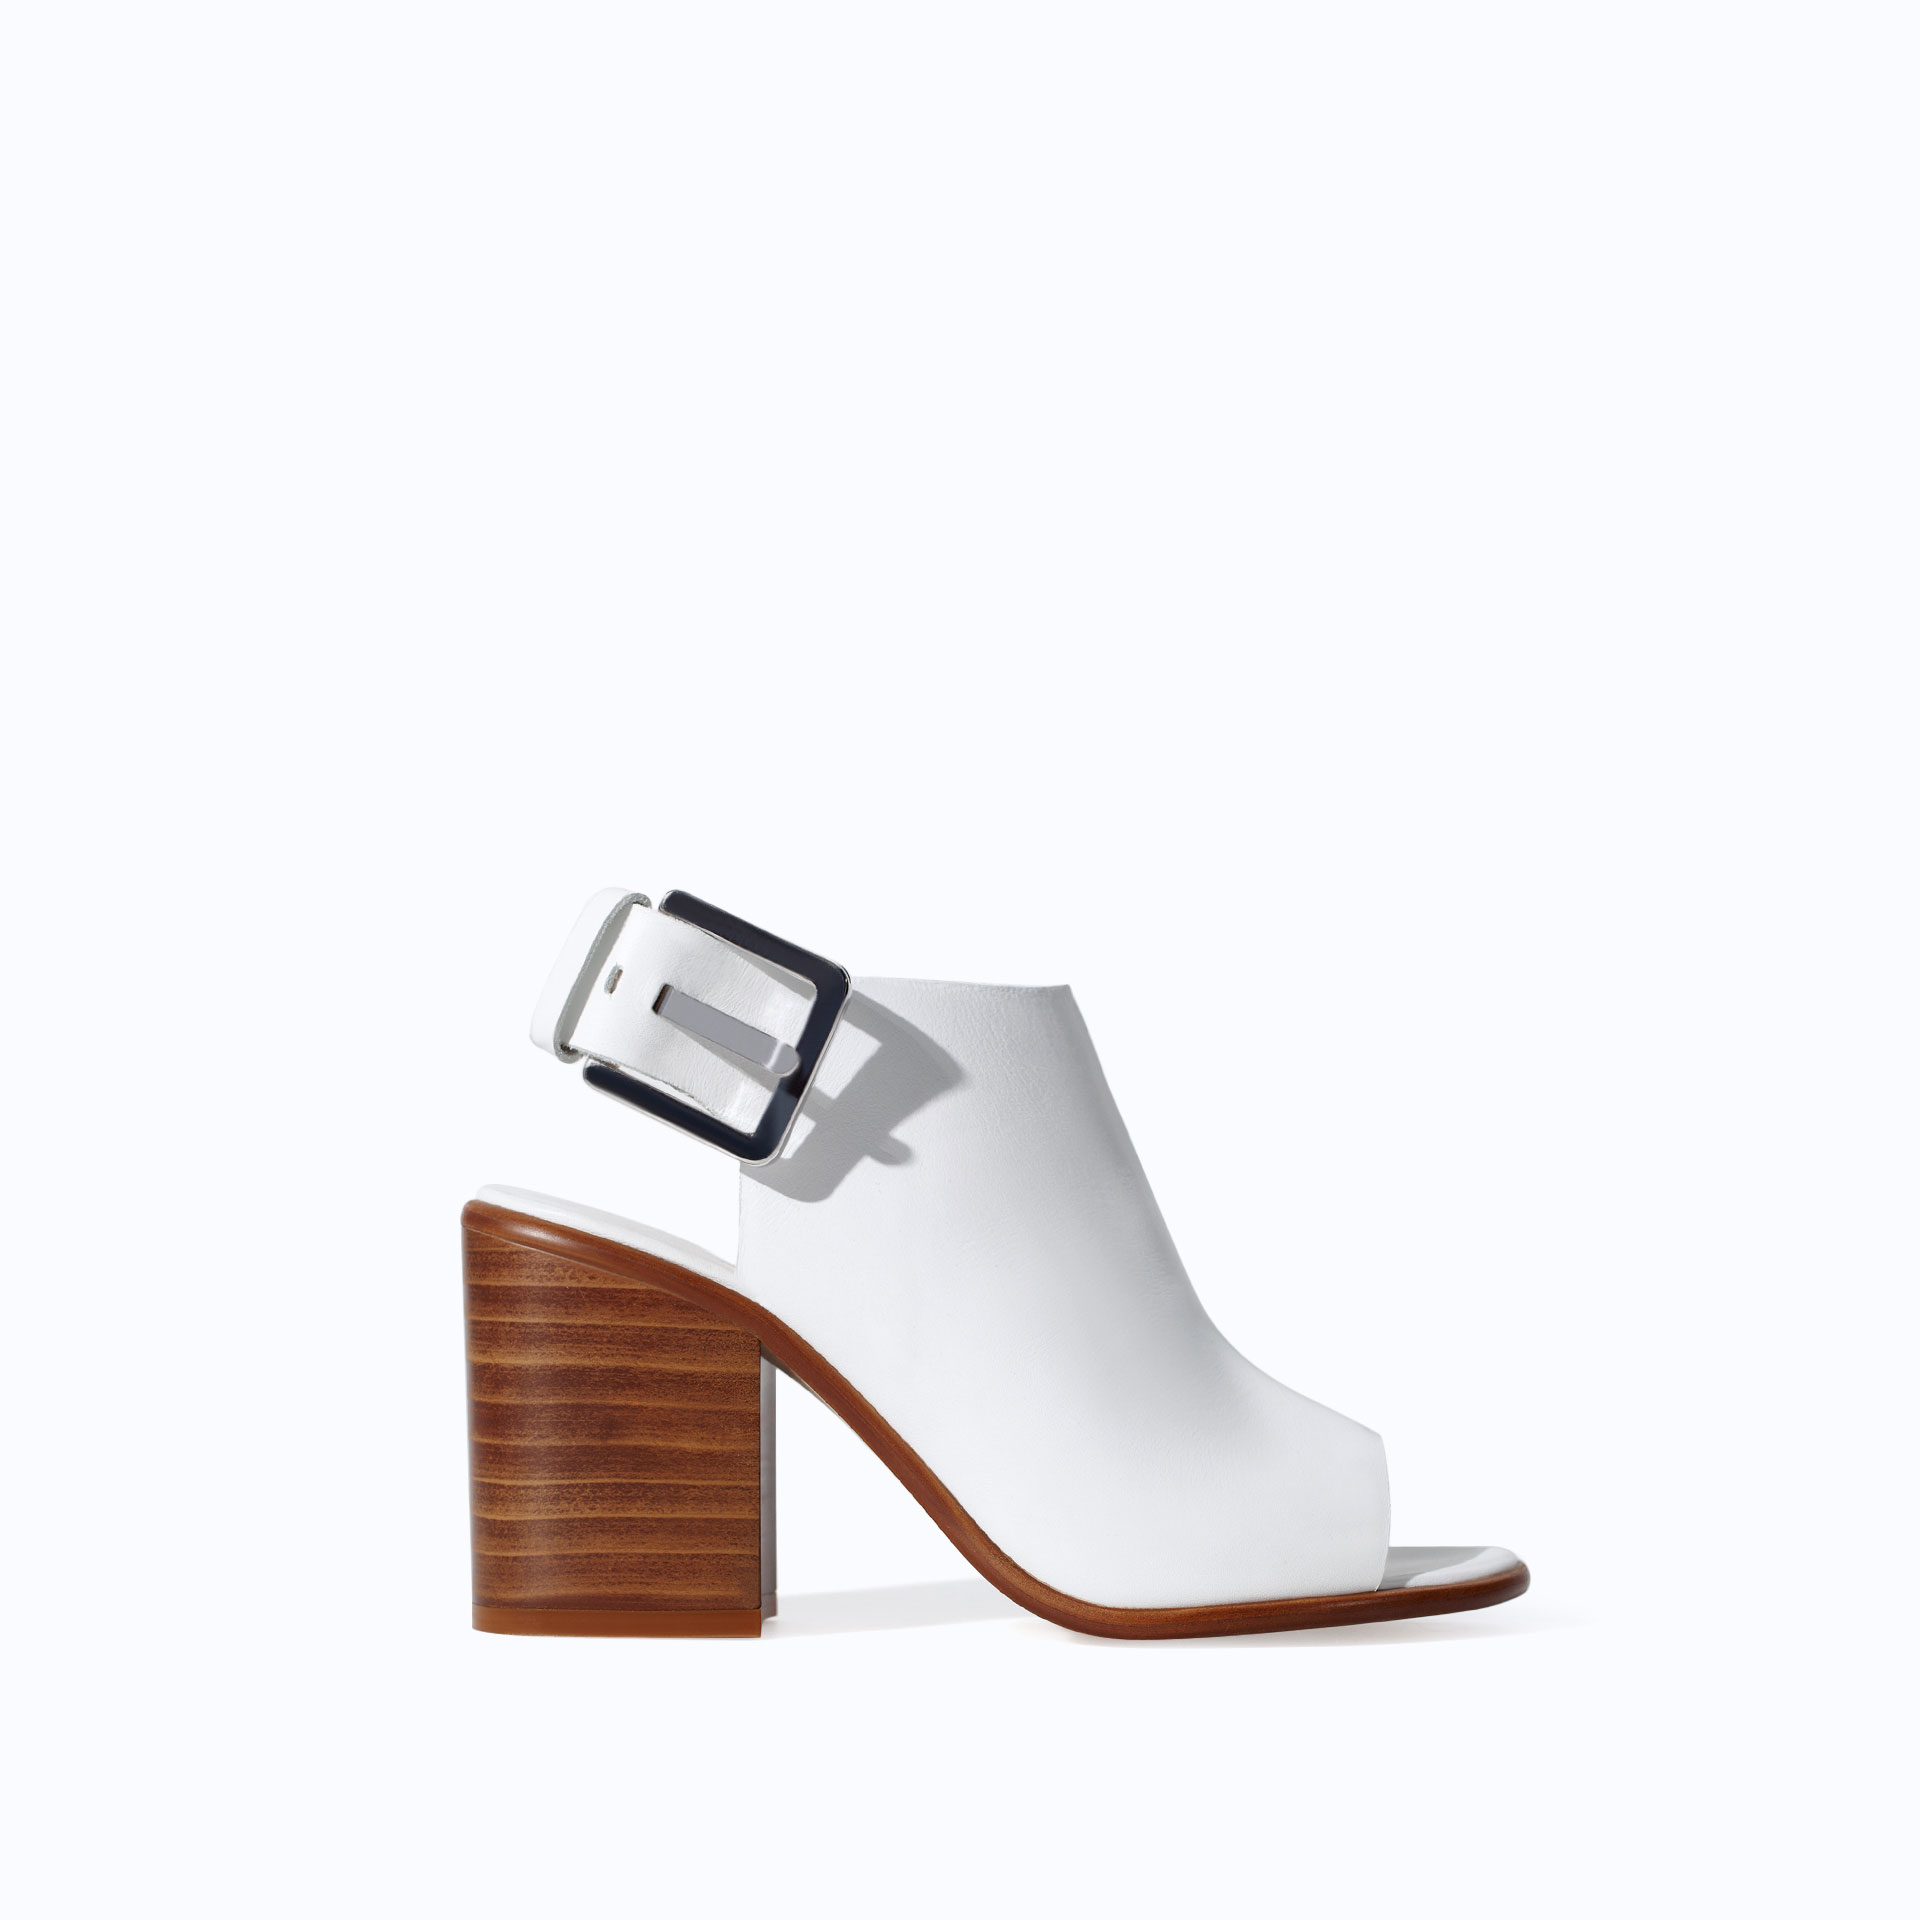 zara leather block heel ankle boot style sandal in white